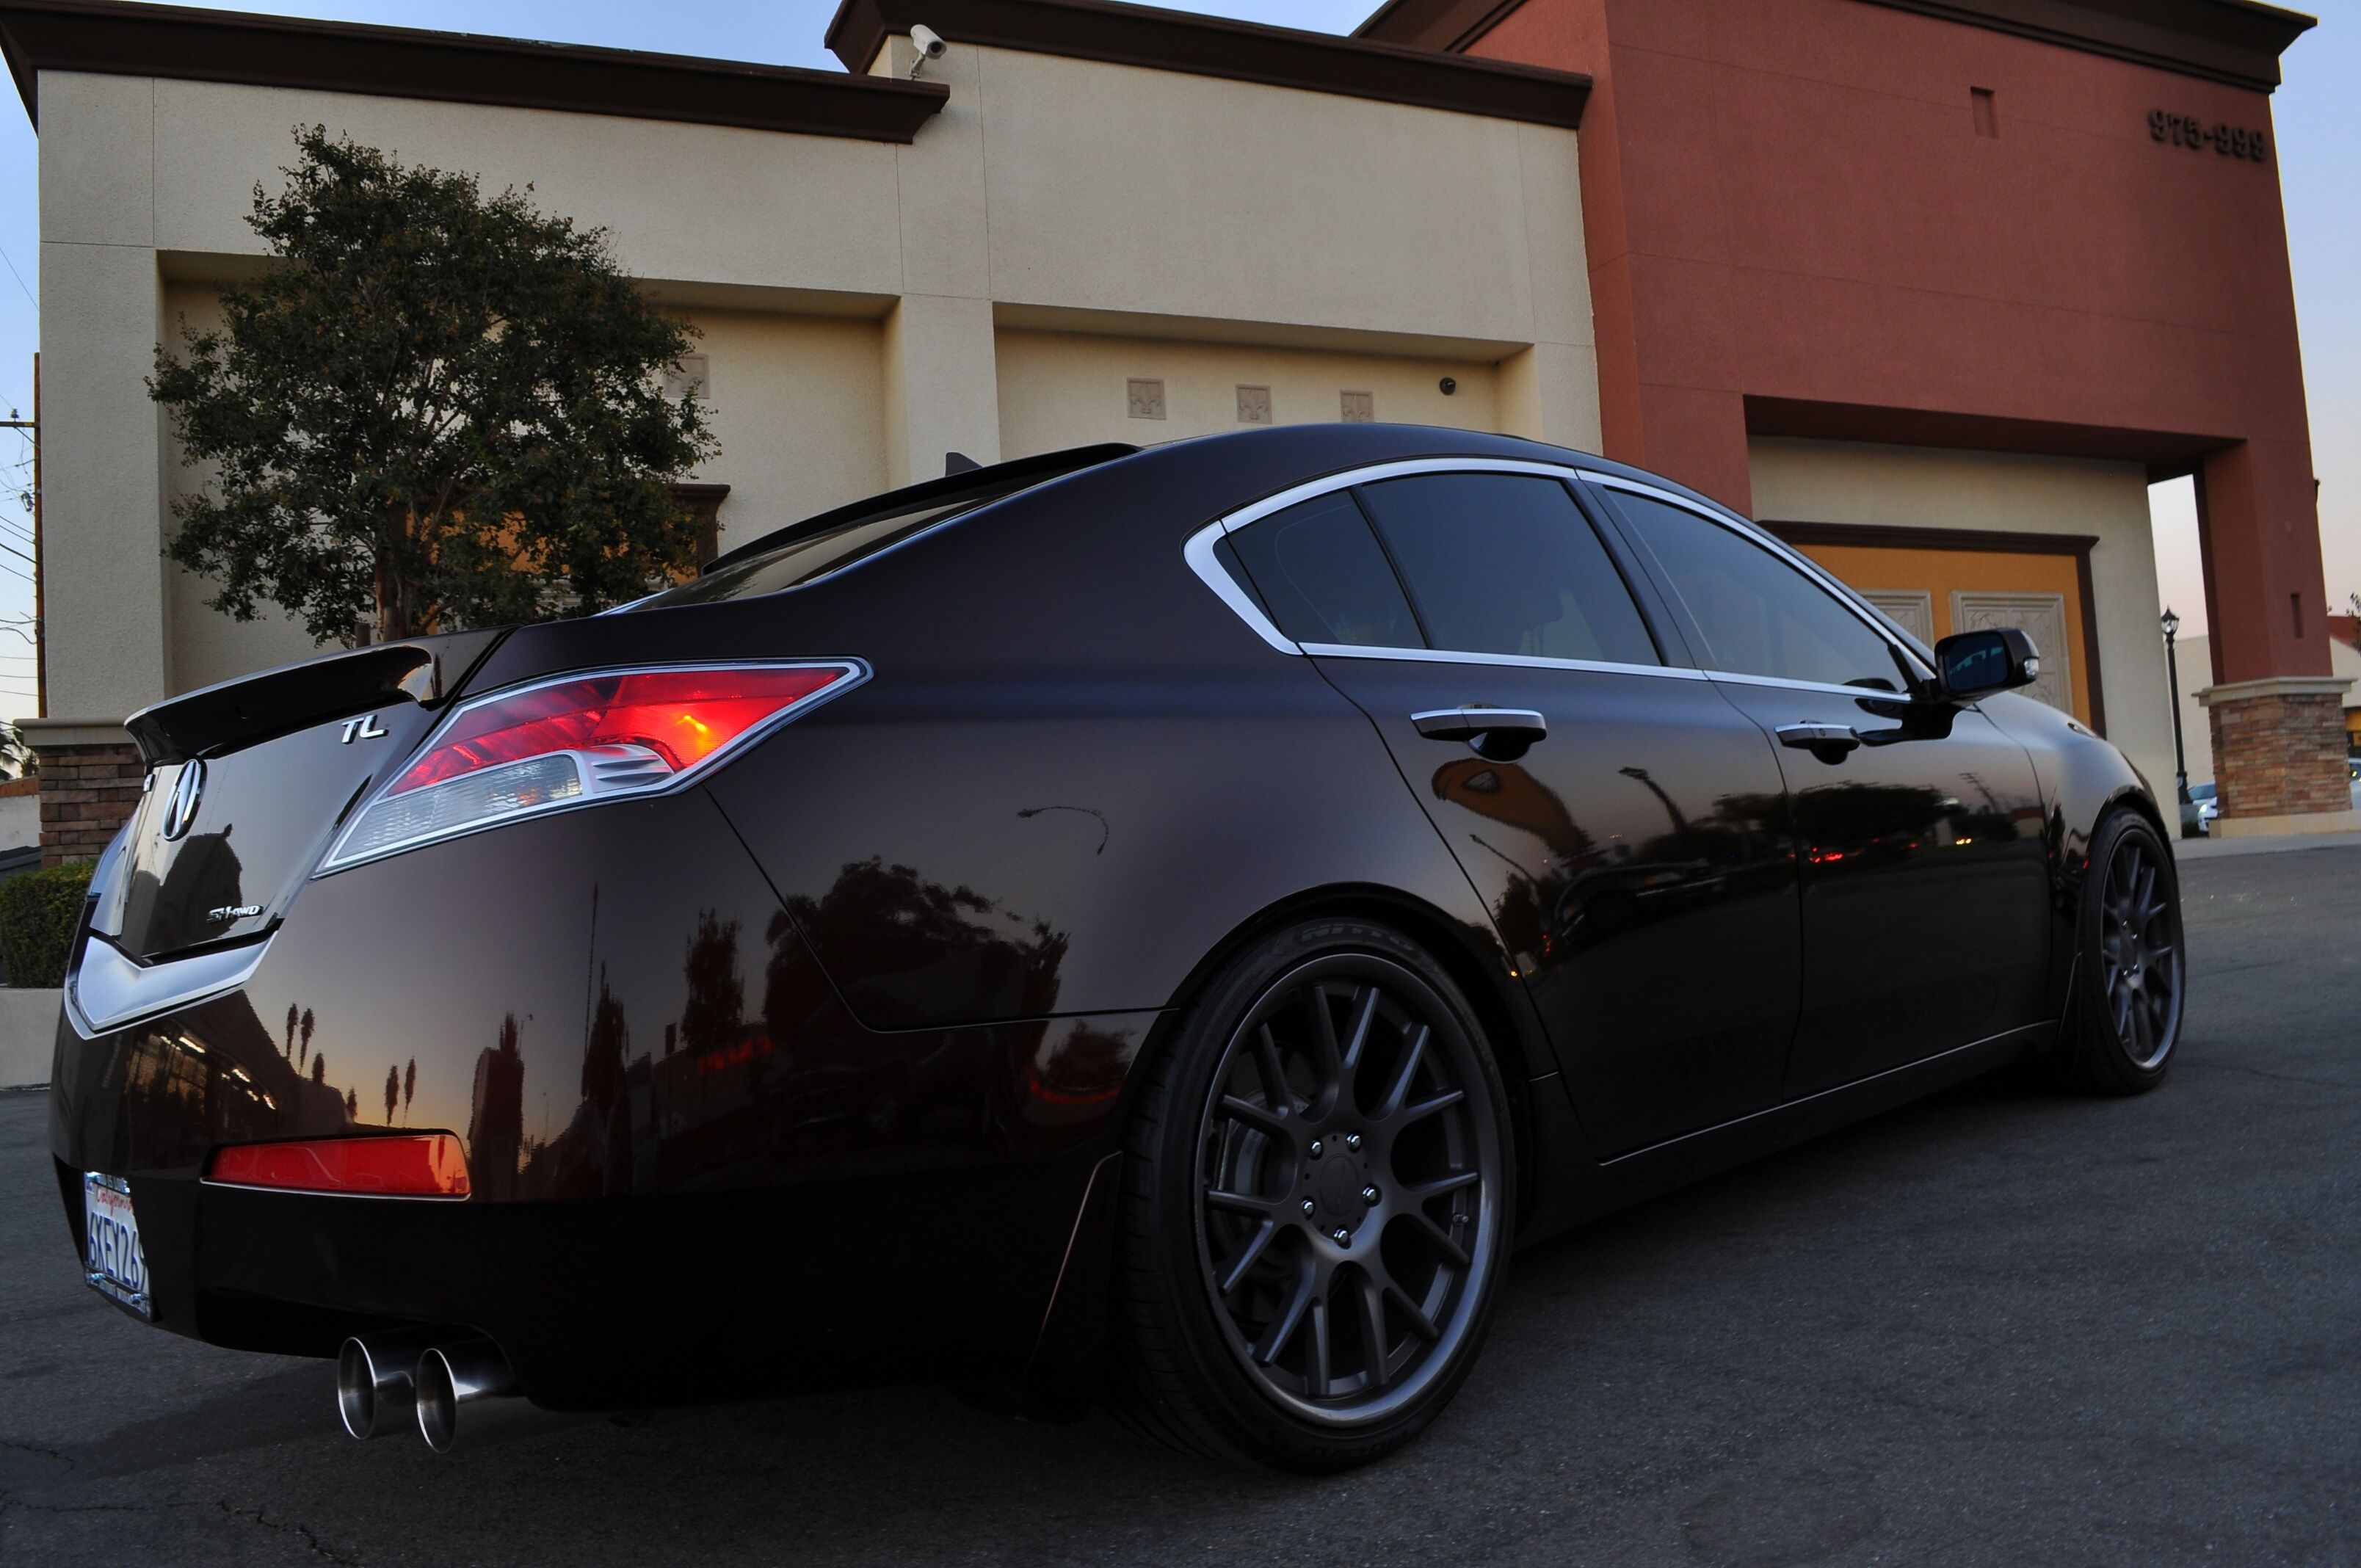 out by ashlei pin painted tl headlights custom acura tricked designed a desiree